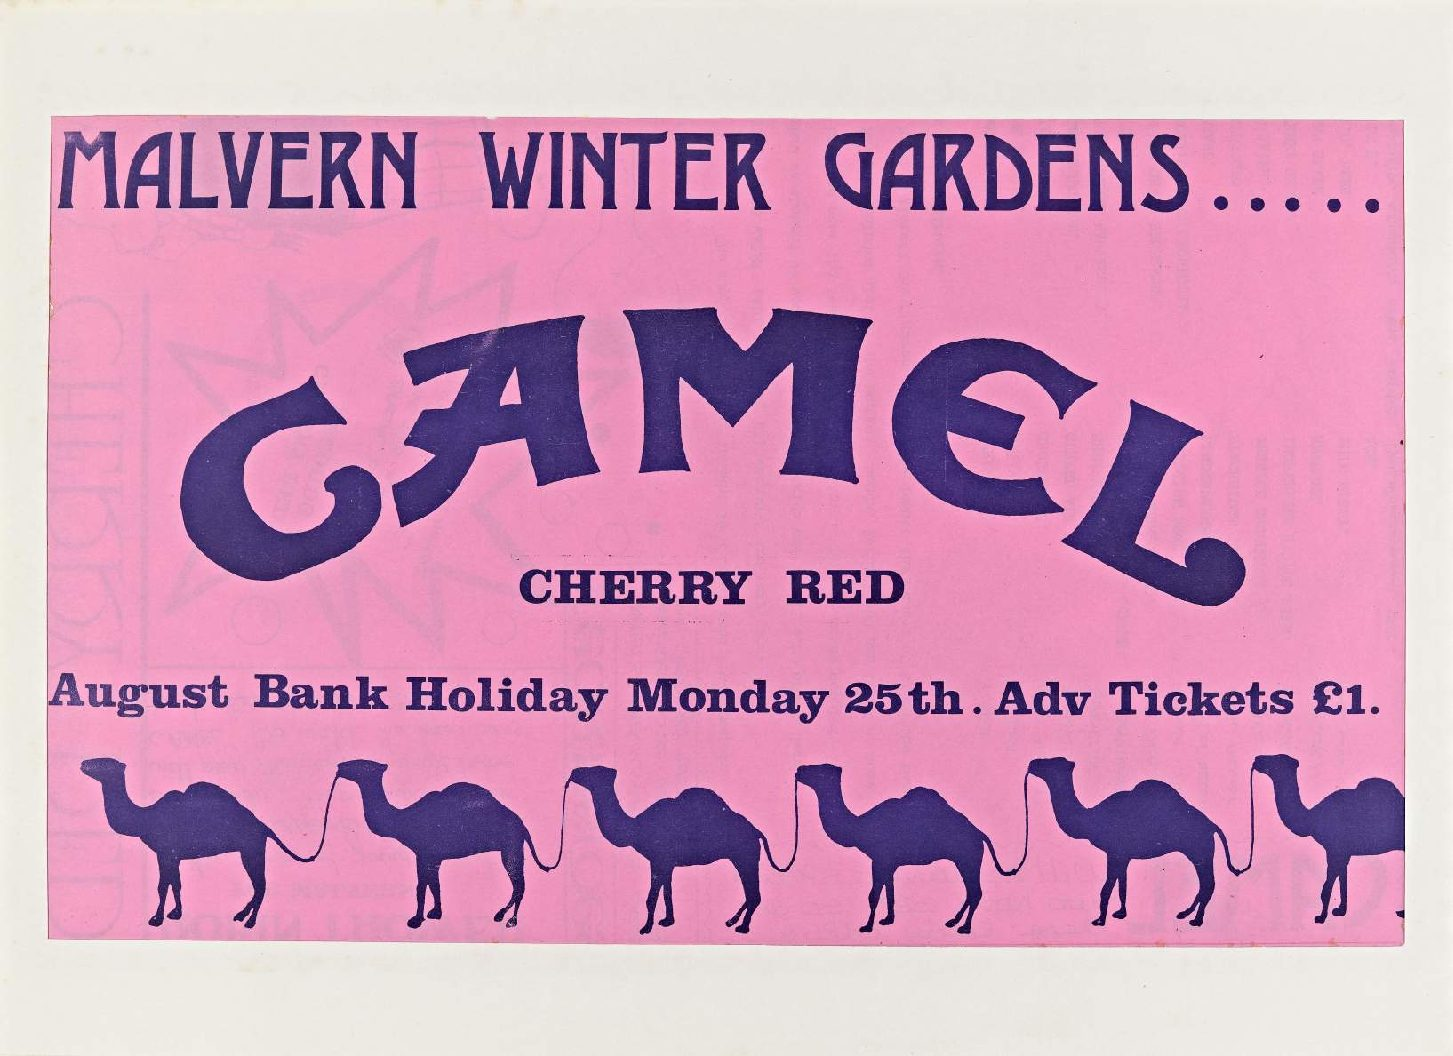 Cherry Red 'fanzine', including advert for Camel at Malvern Winter Gardens, 25 August 1975